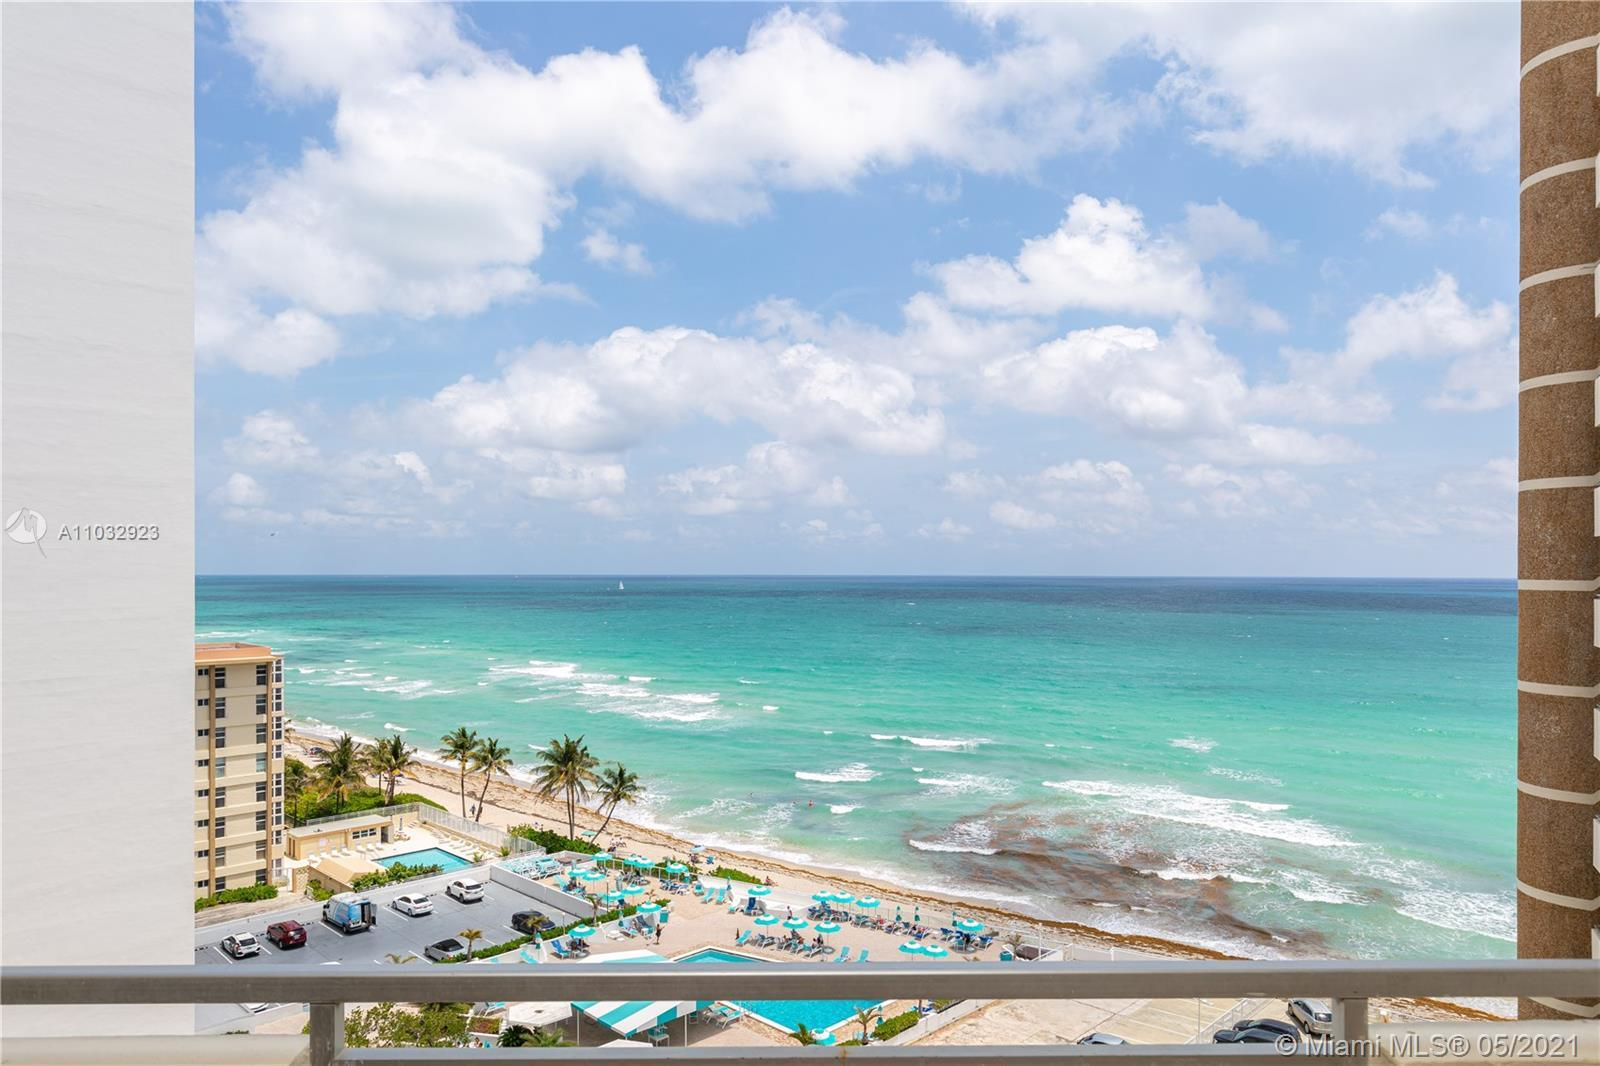 DIRECT OCEAN VIEWS! Live the beach life in this bright and beautiful apartment! Relax and enjoy the